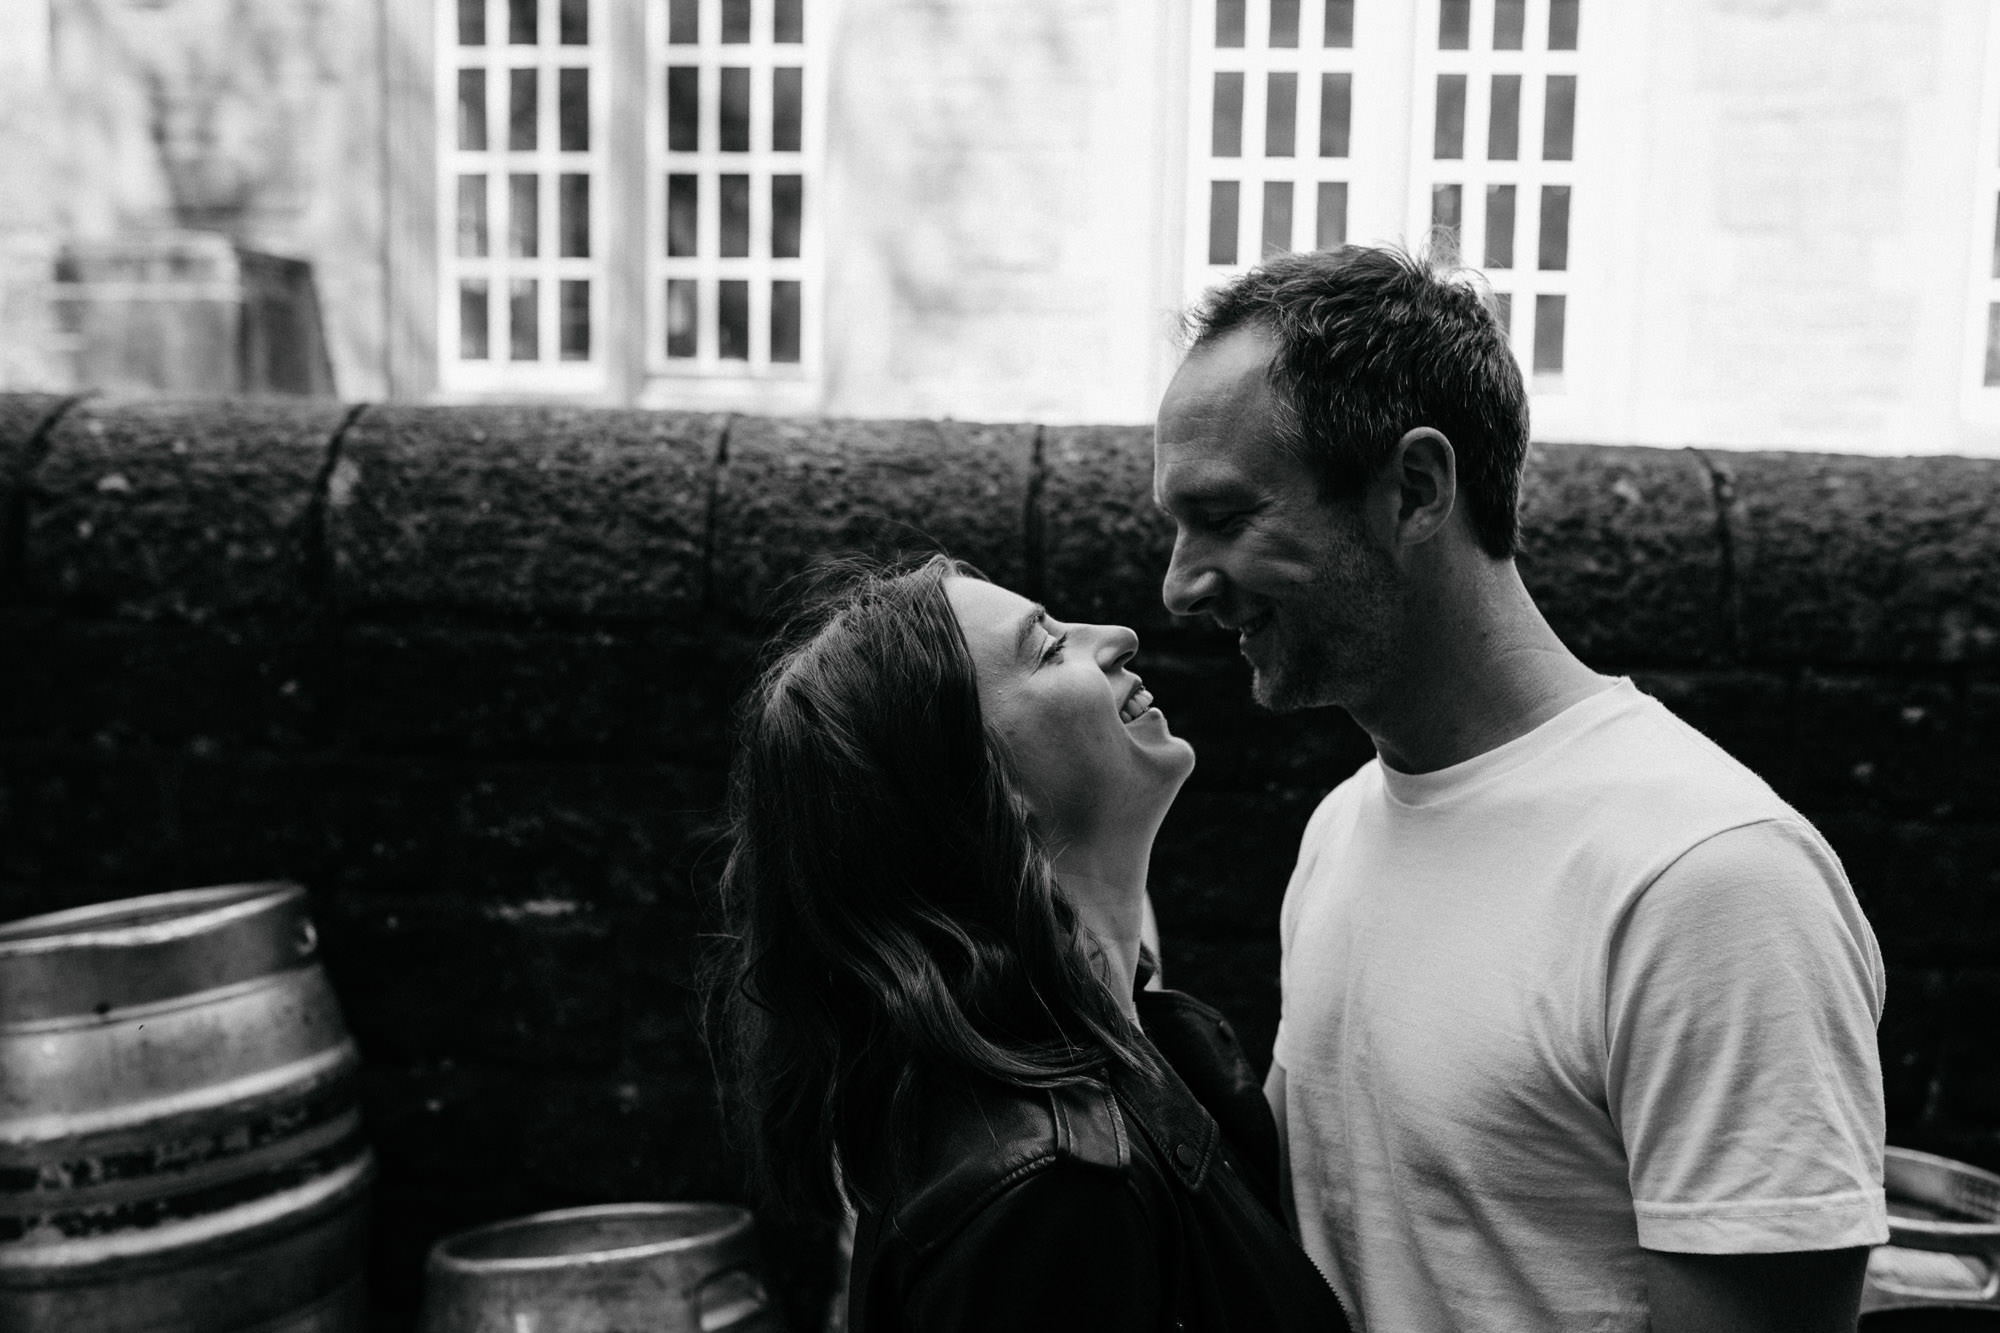 Pre-wedding photograph in Yorkshire, black and white photo, couple smiling at each other